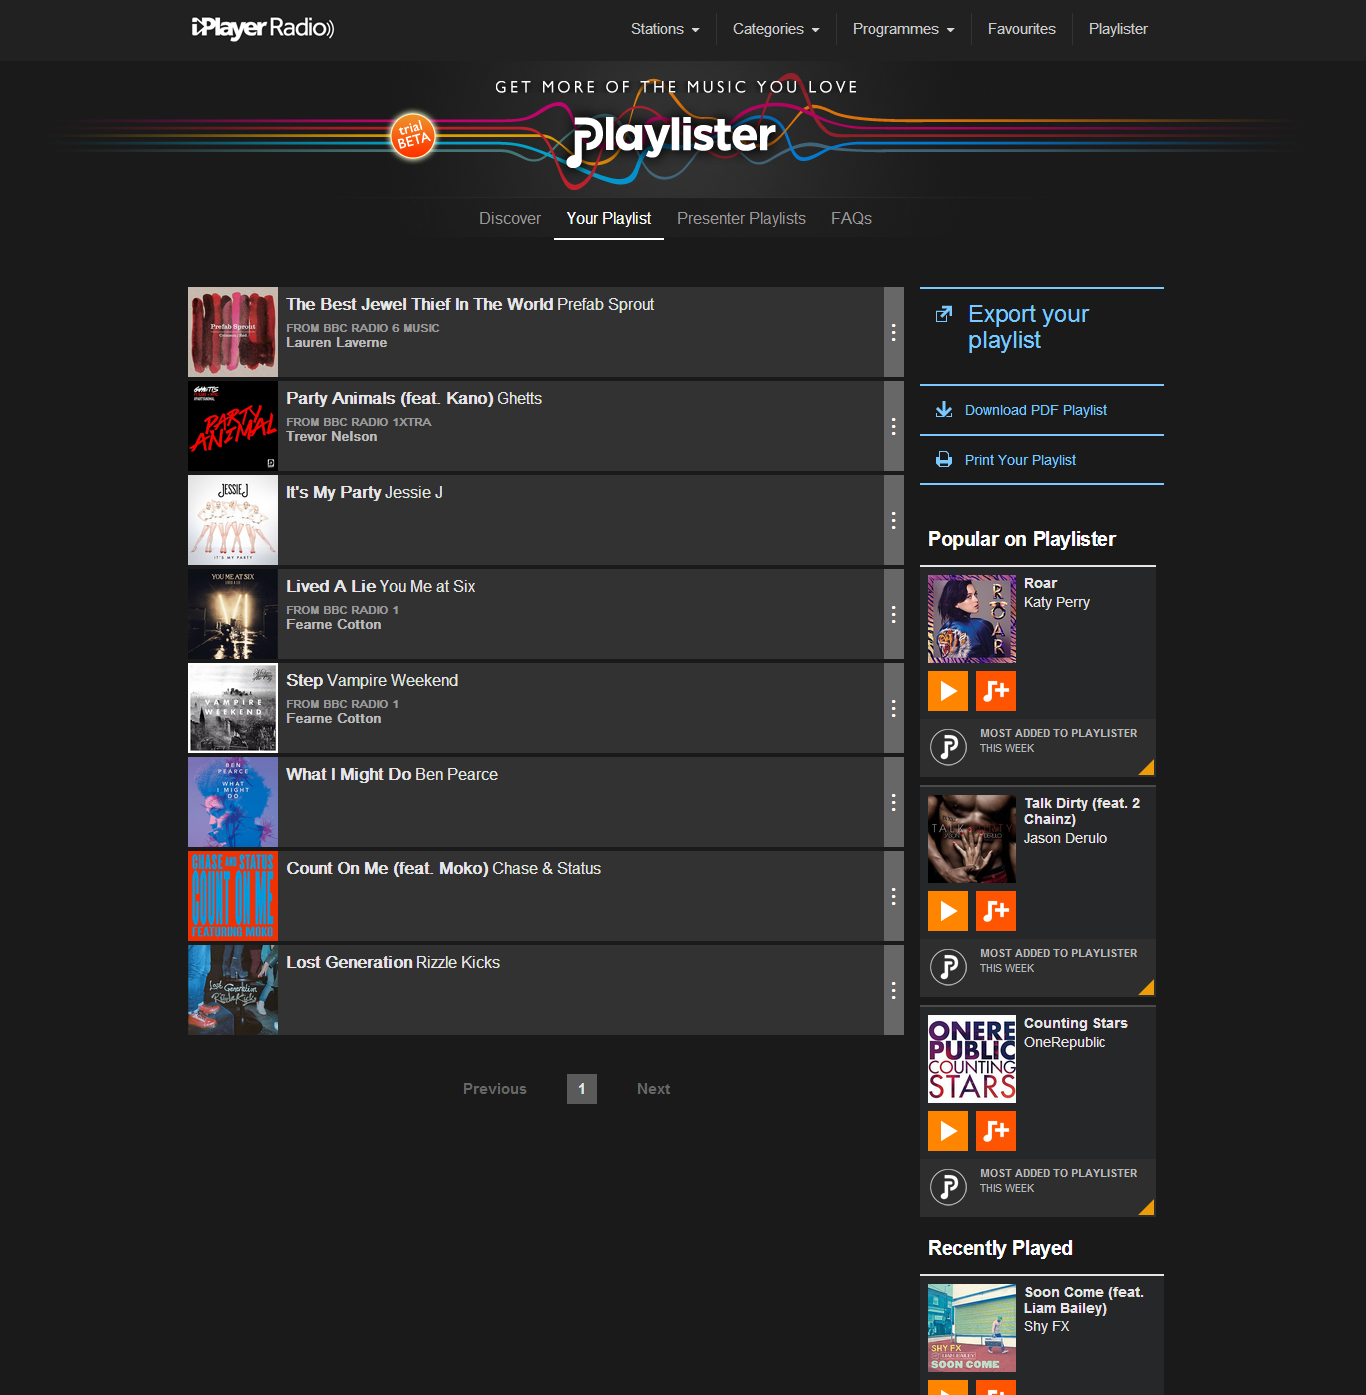 Playlister playlist How to use the BBCs new Playlister music service